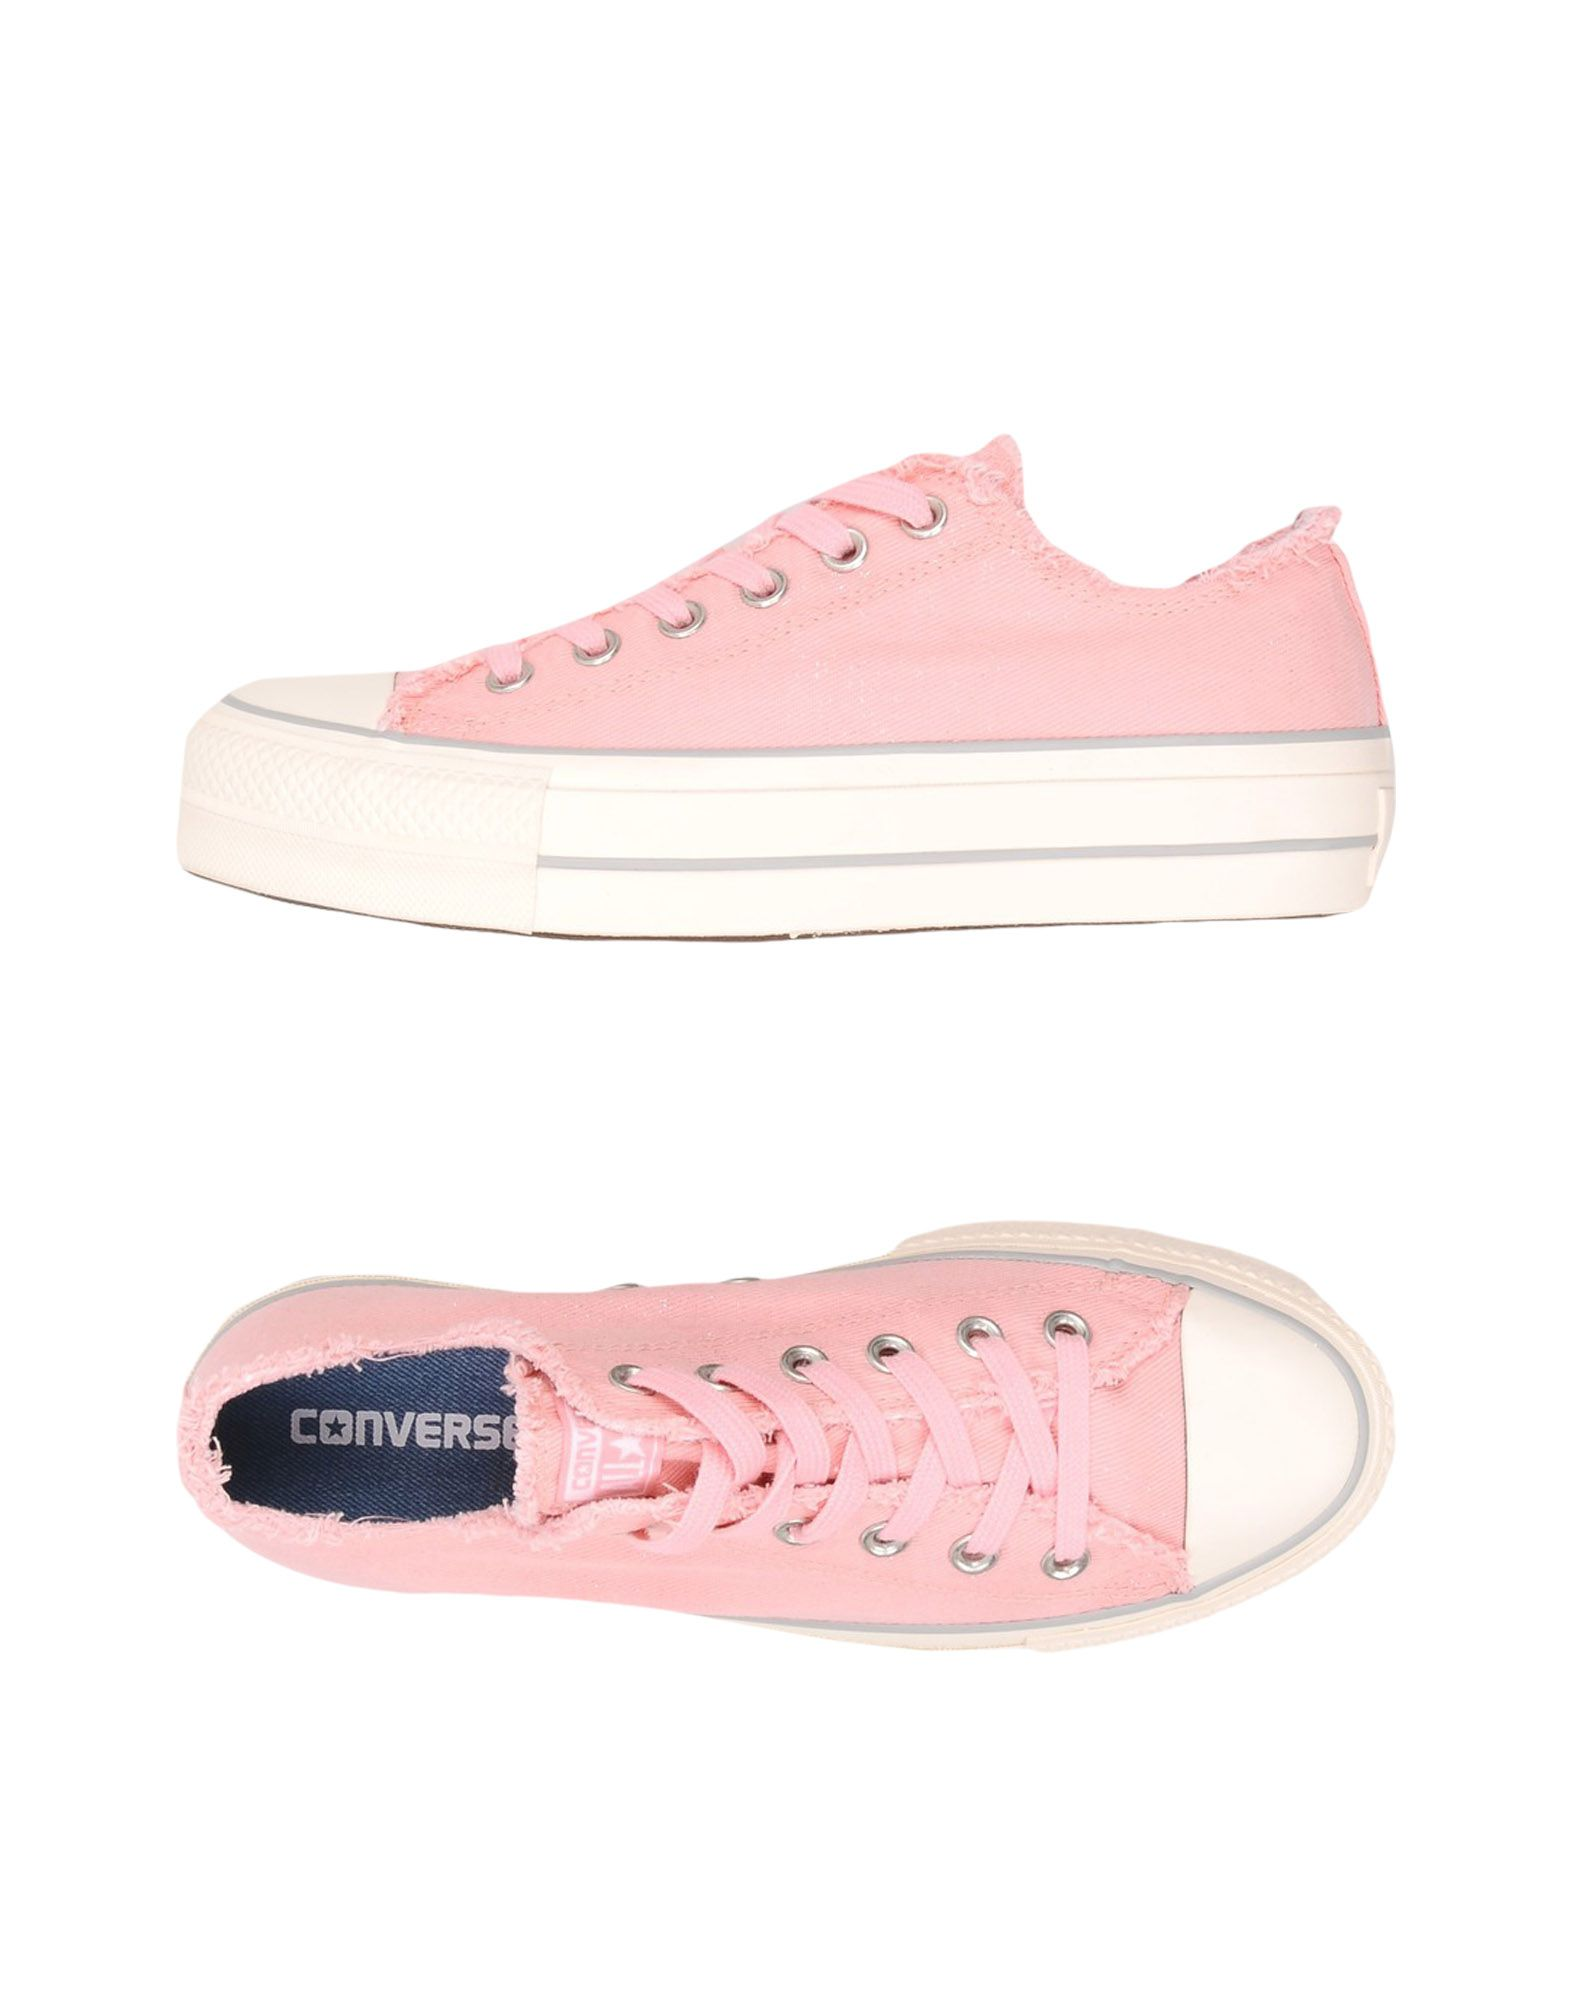 Sneakers Converse All Star Ctas Ox Clean Lift Denim Frayed - Donna - Acquista online su